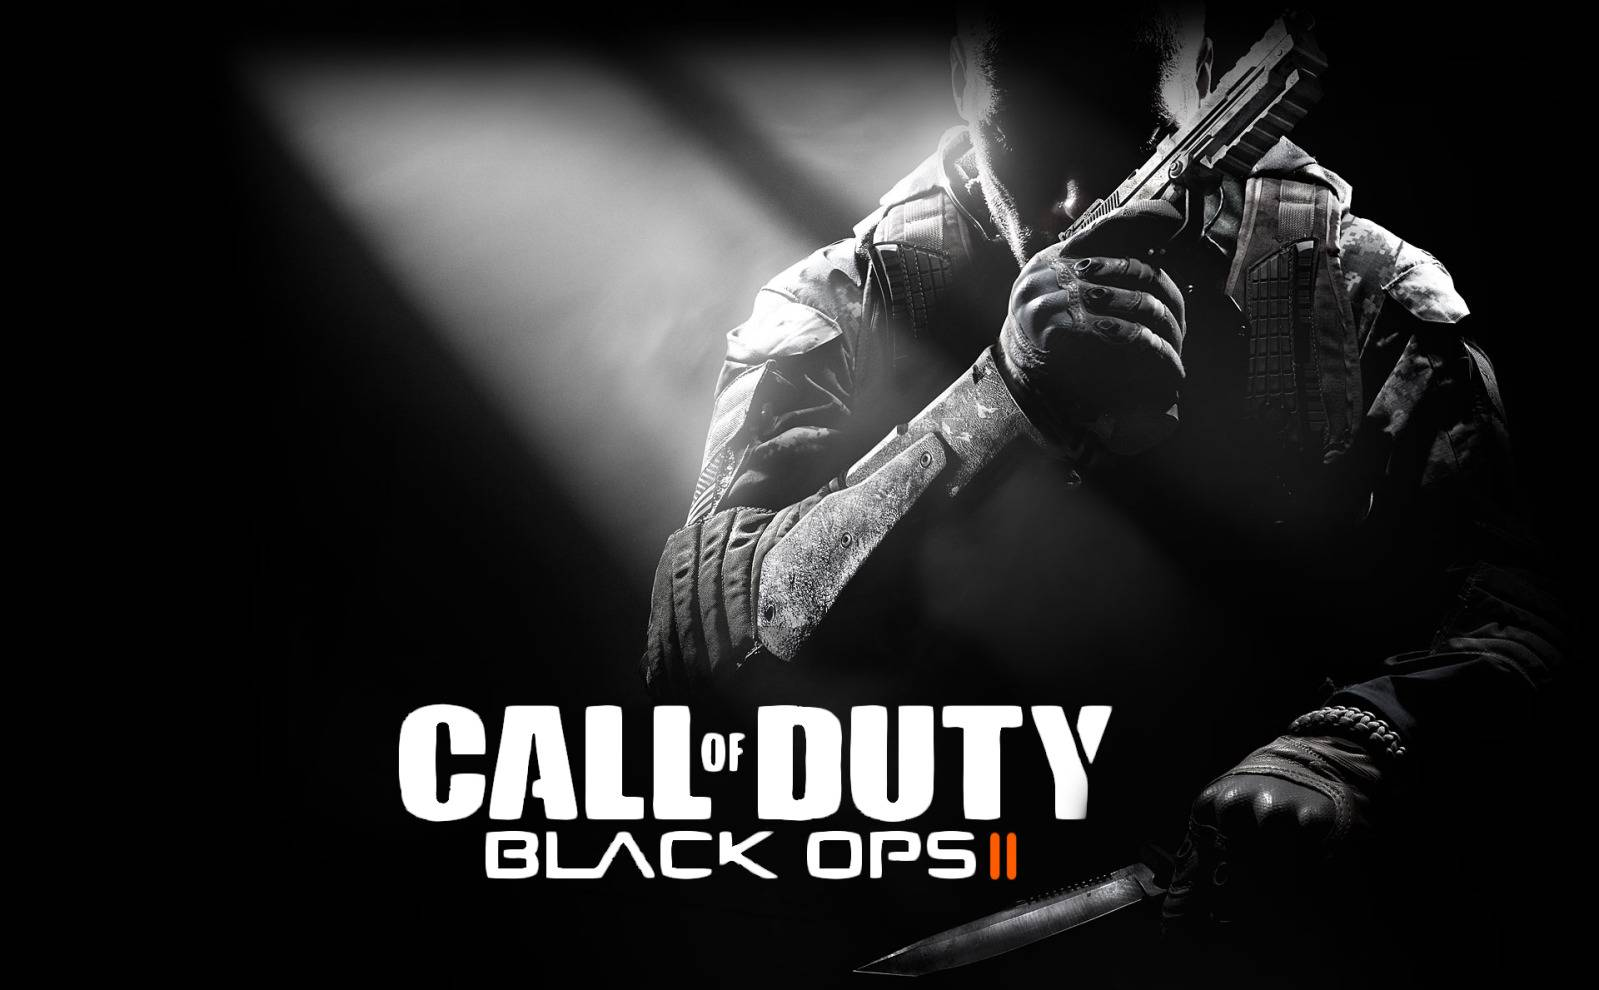 Call Of Duty Black Ops 2 Wallpapers In Hd